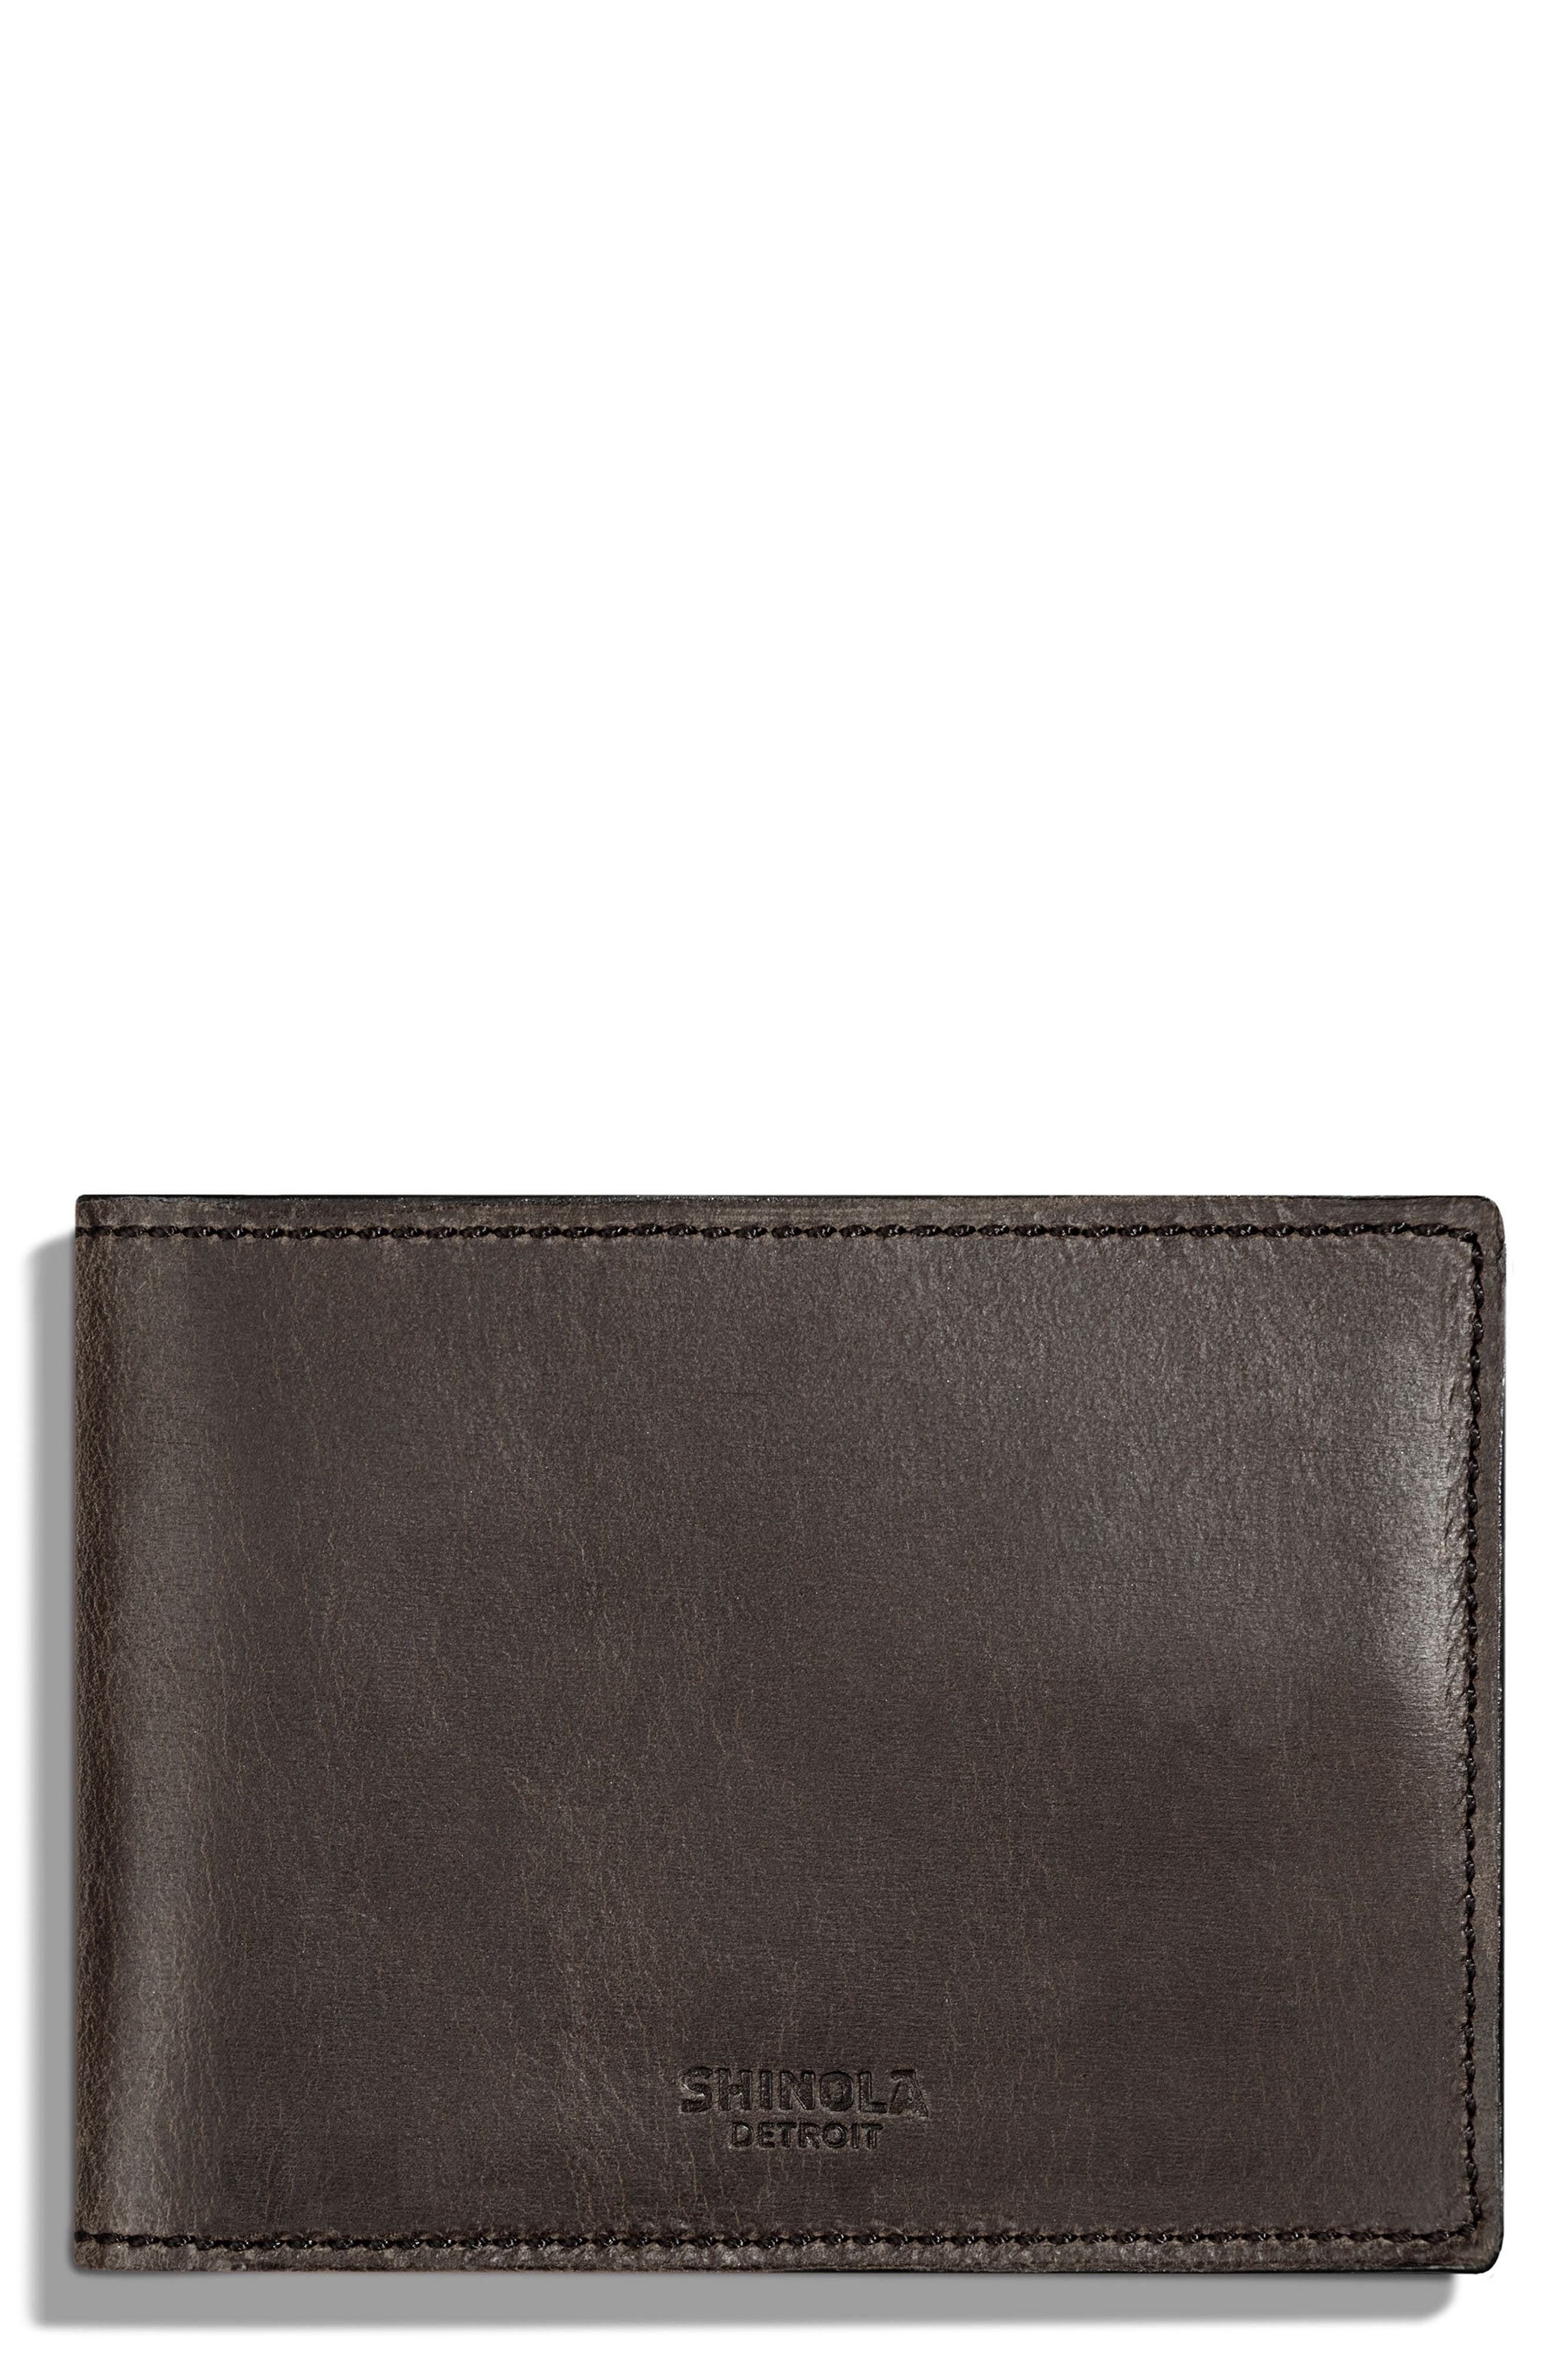 Leather Wallet,                             Main thumbnail 1, color,                             Charcoal